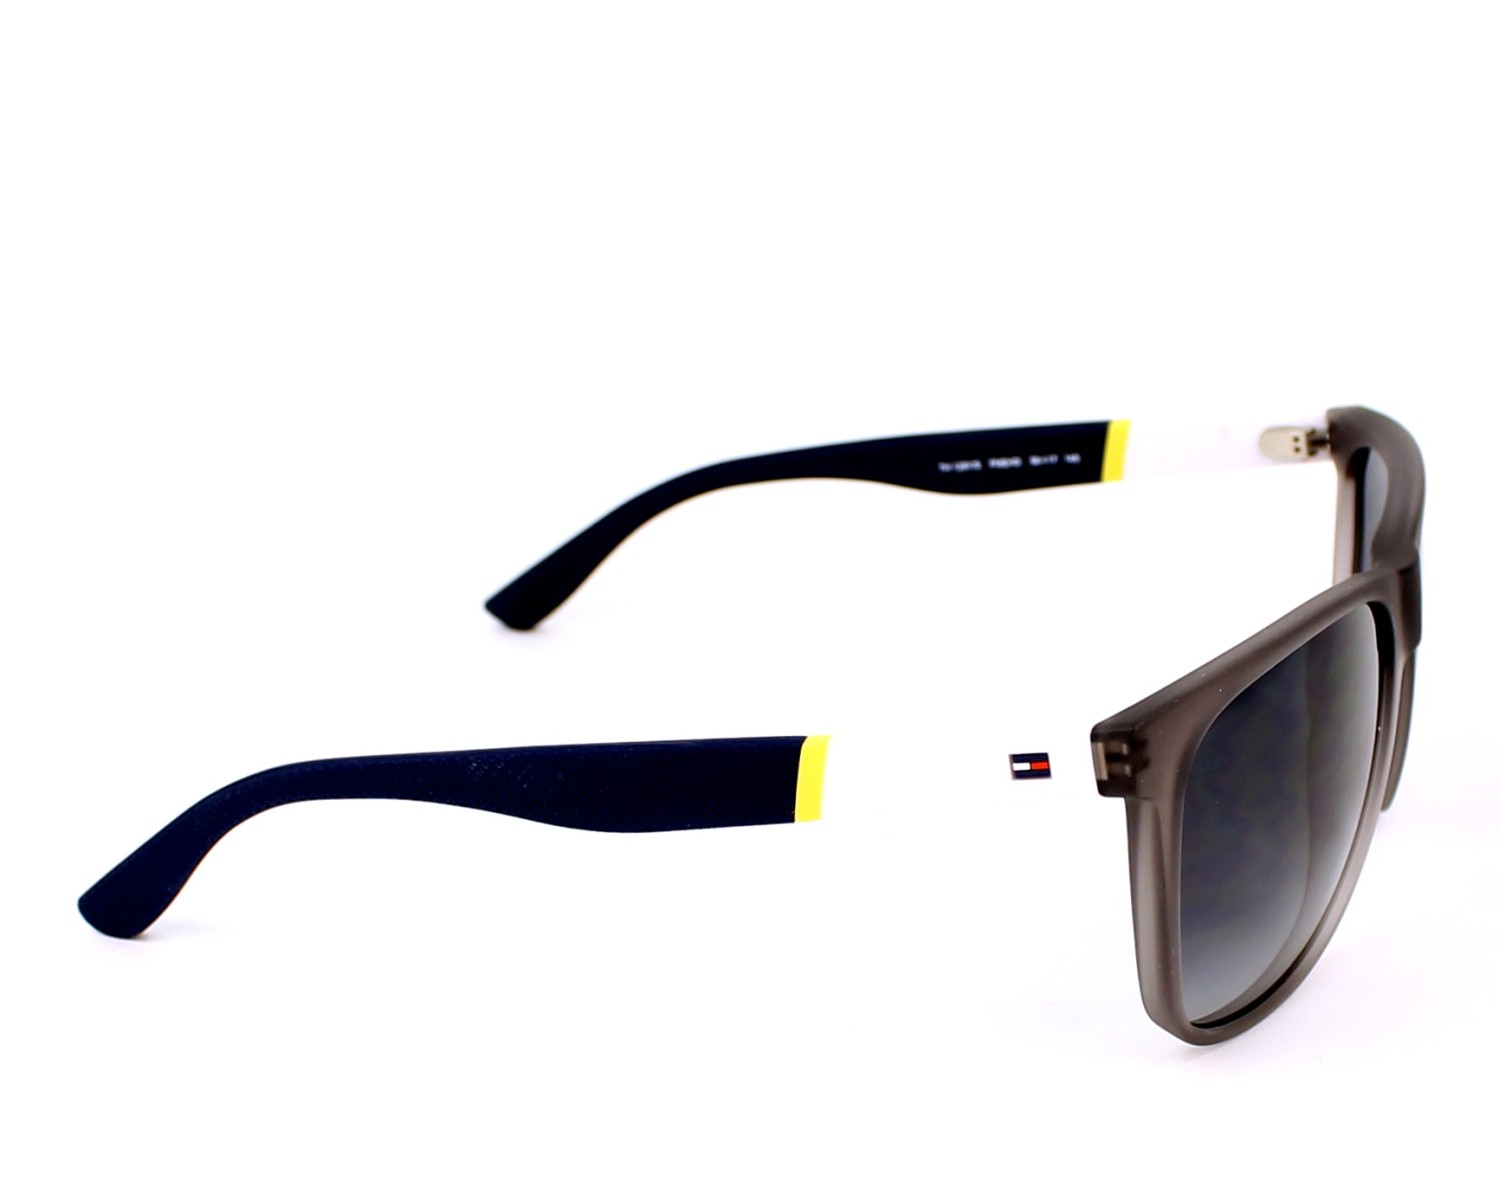 84fae099e3b60 Sunglasses Tommy Hilfiger TH-1281-S FME HD - Grey White side view